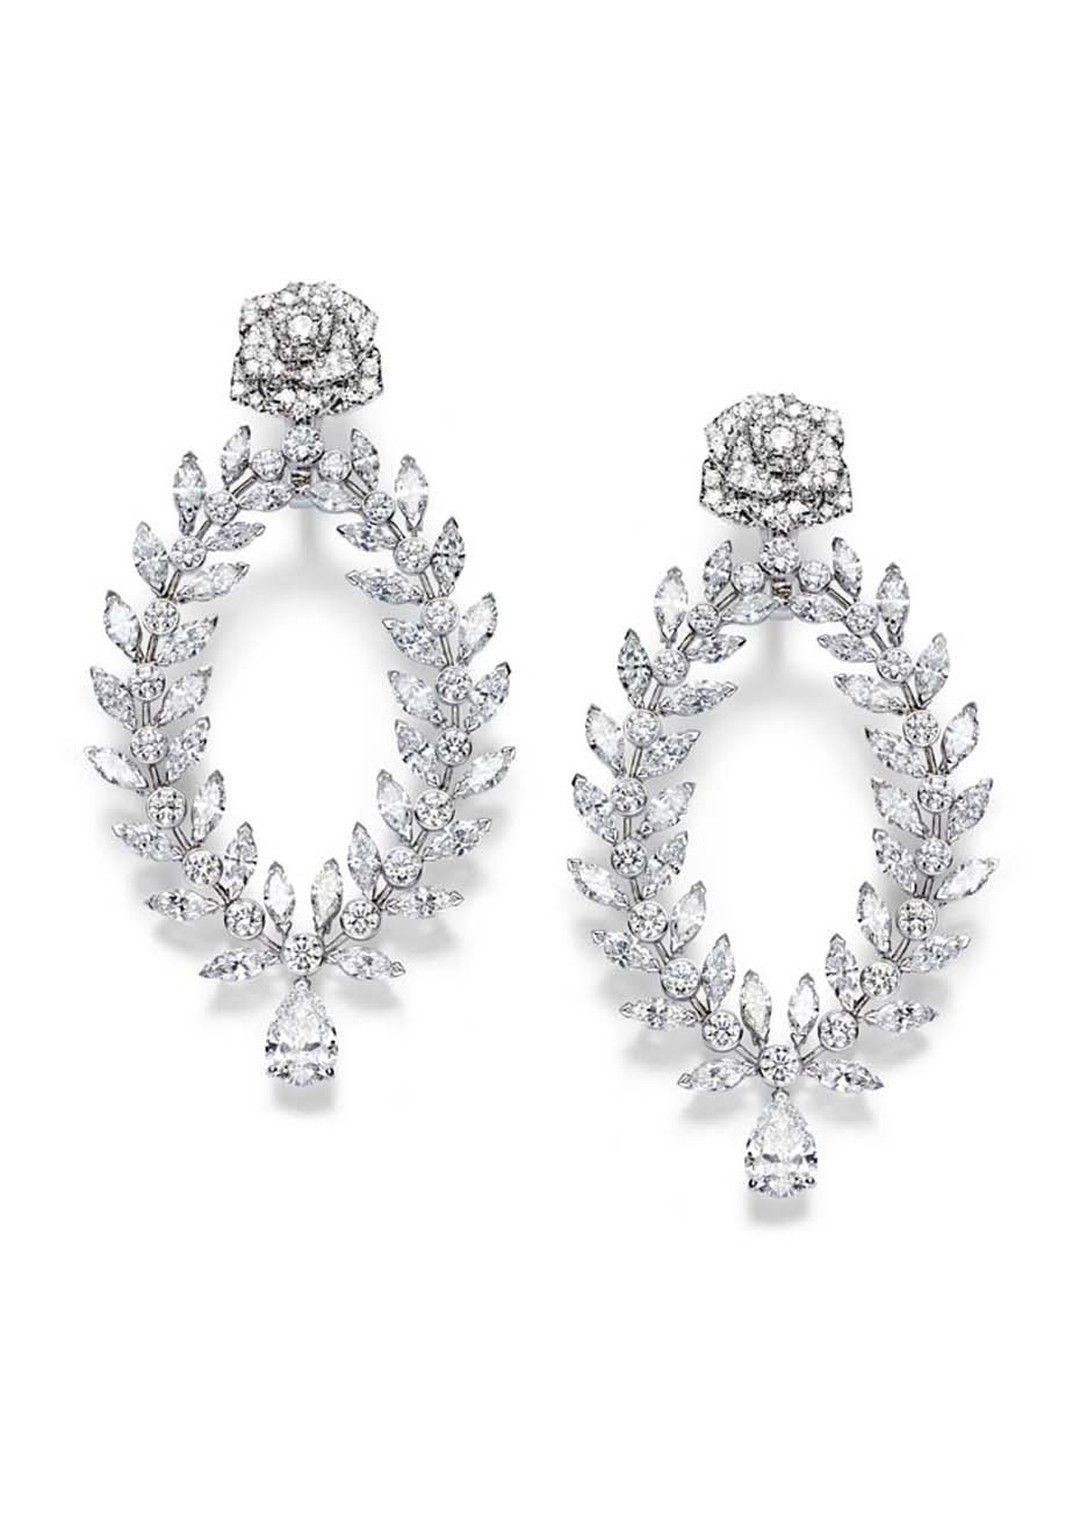 Piaget Rose Passion earrings in white gold, designed to look like laurel branches, set with marquise-cut diamonds